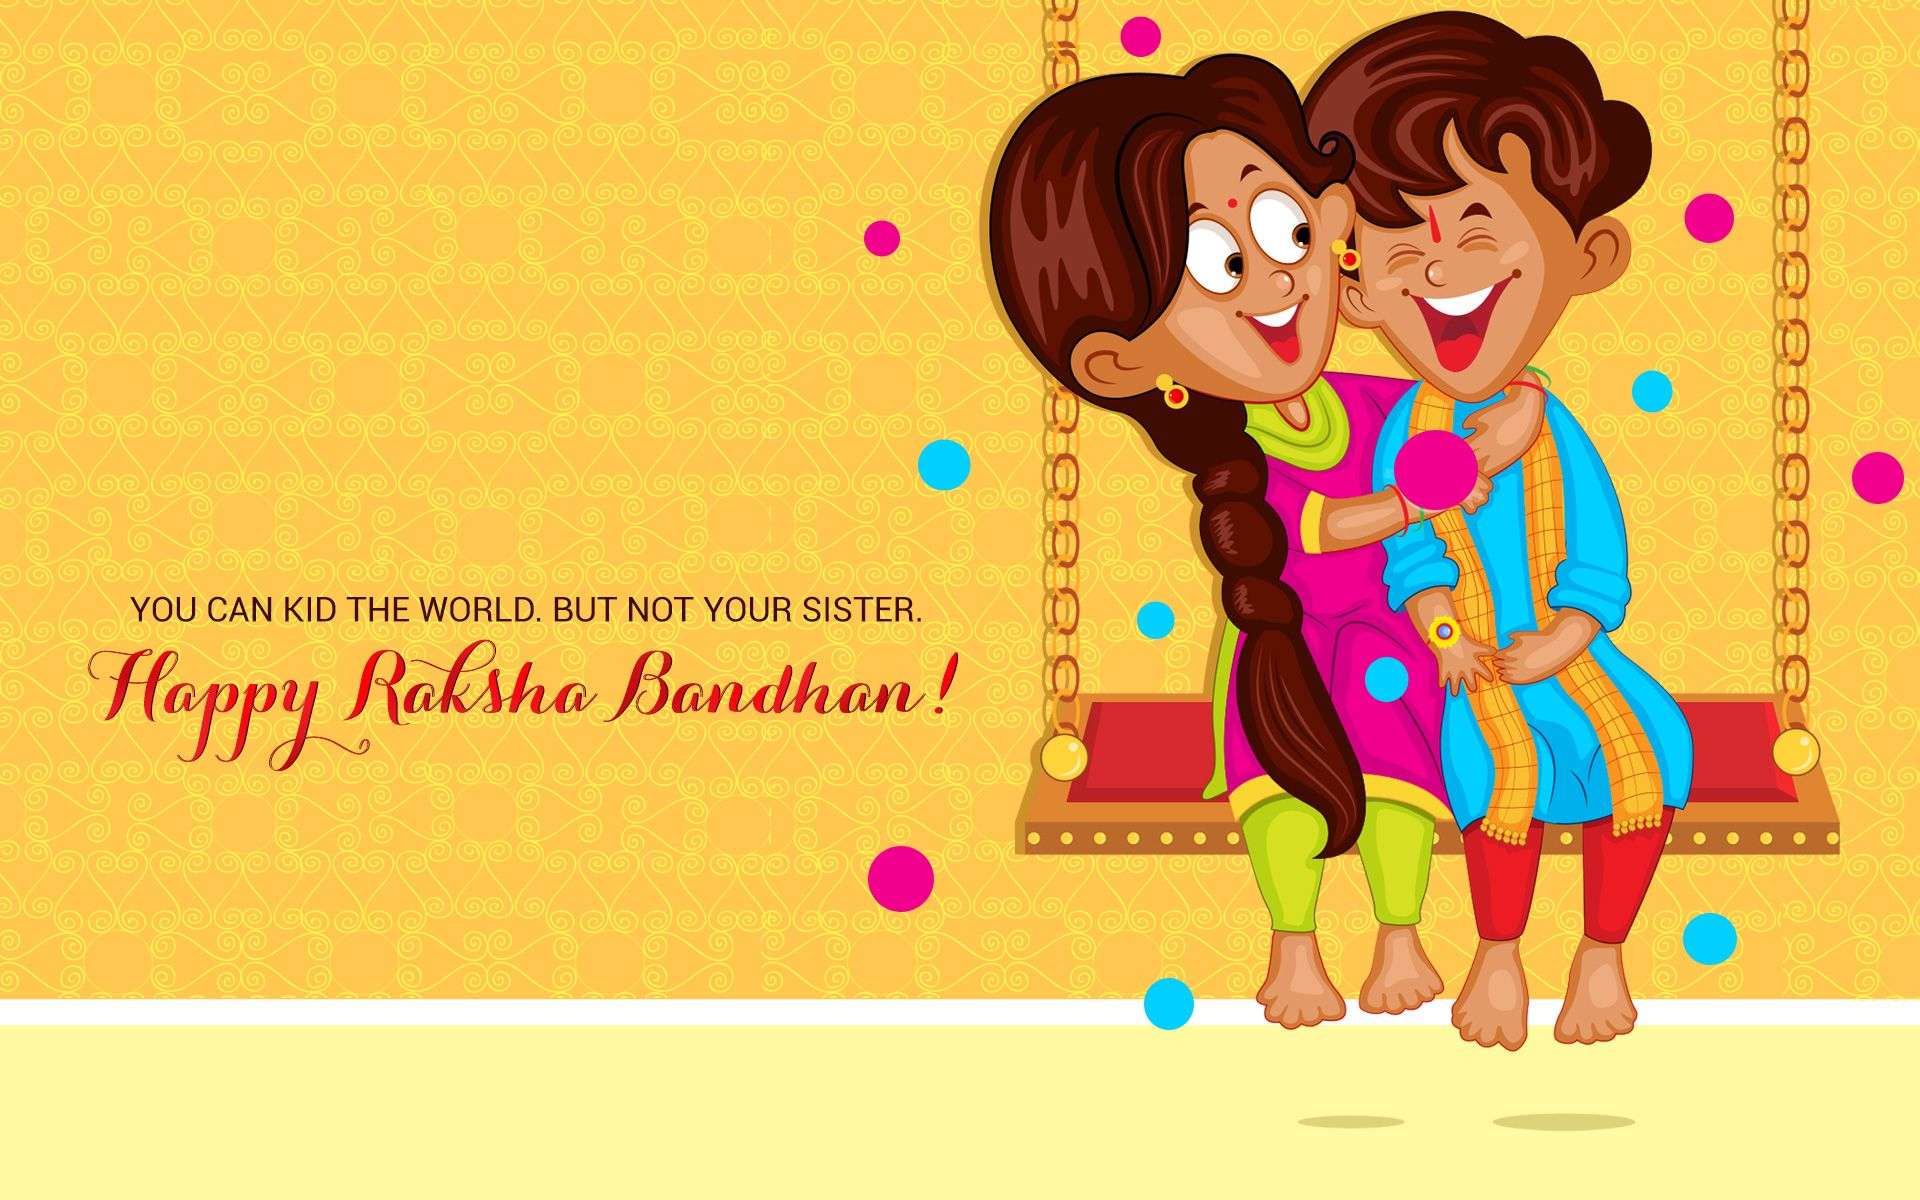 Love Wallpaper For Sister : Rakshabandhan Brother sister HD Wallpaper Happy Raksha Bandhan , Rakhi, Brother. Sister, Love ...